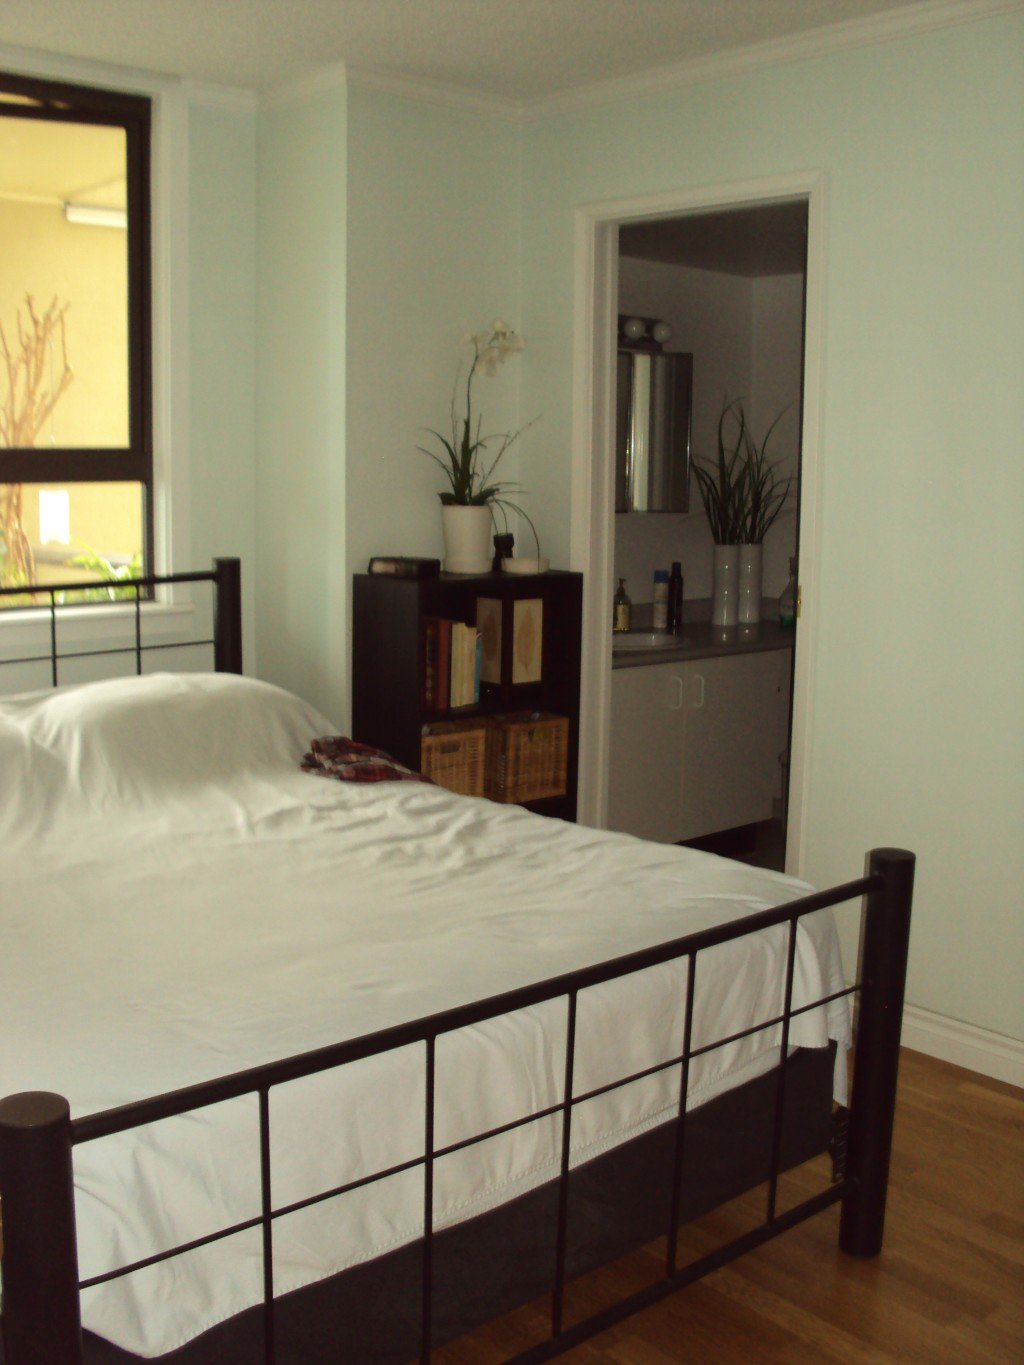 Photo 4: Photos: 803 789 Drake Street in Vancouver: Metrotown Condo for sale (Burnaby South)